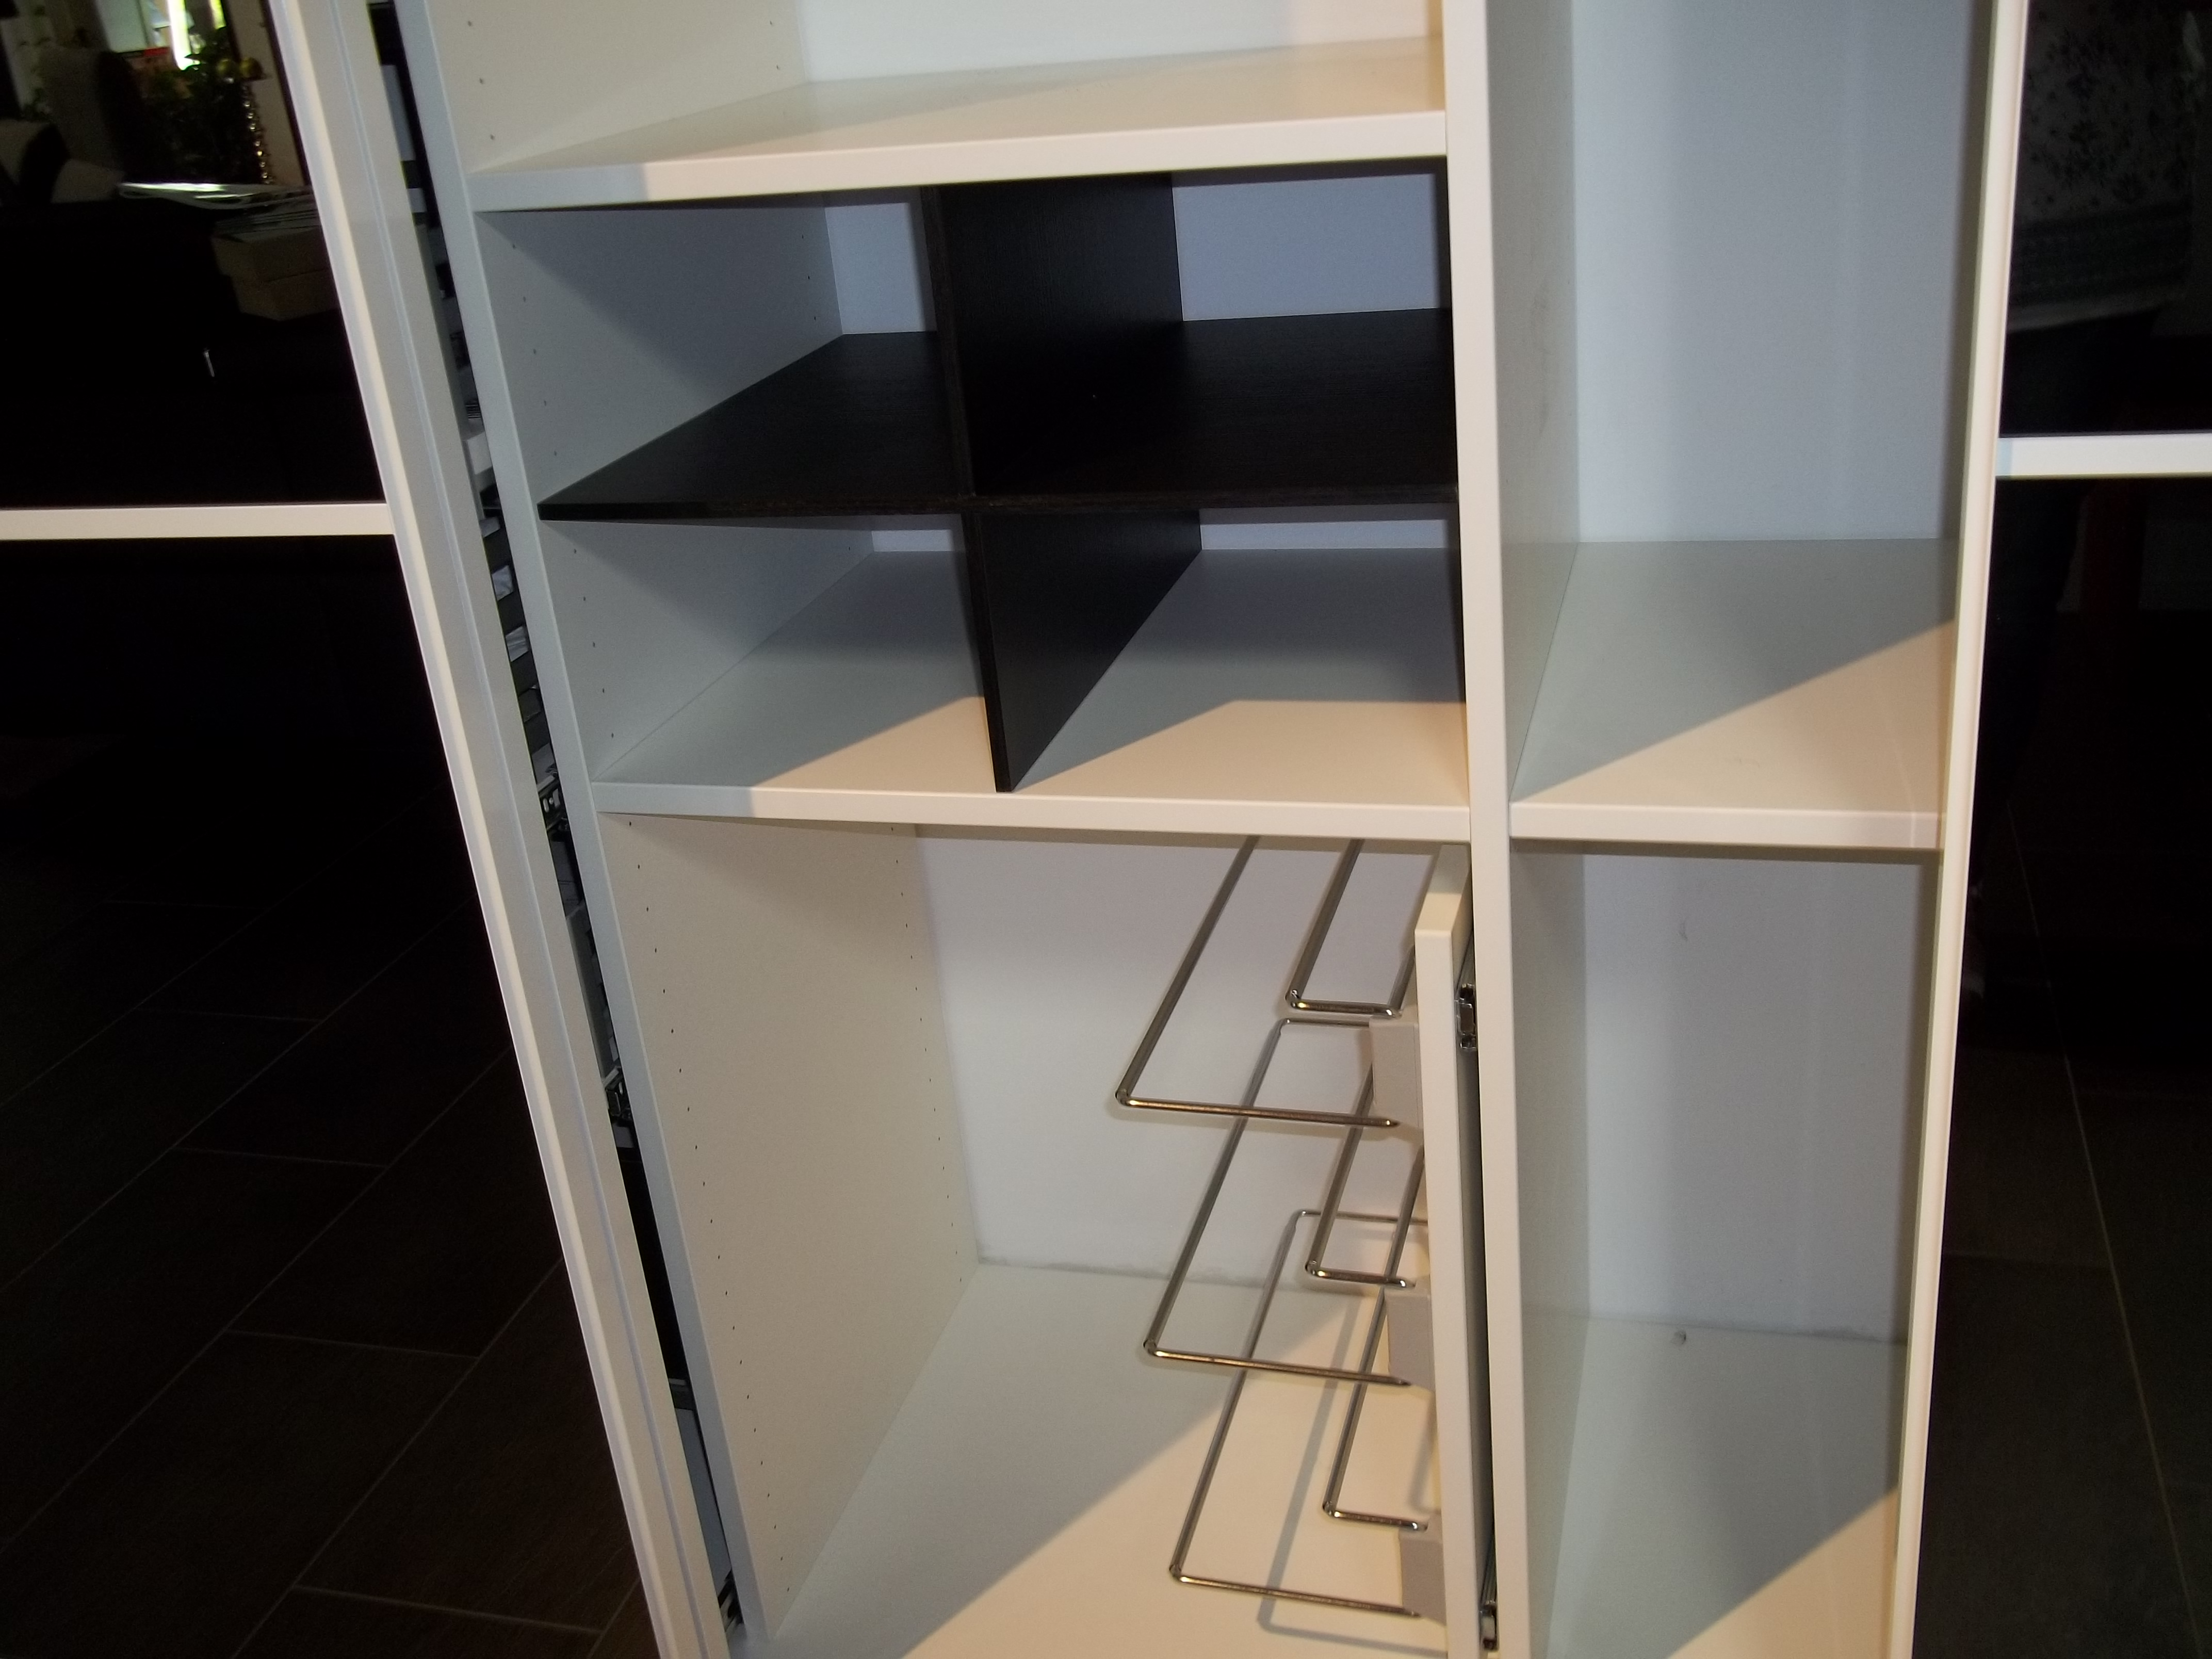 mein ausstellungsst ck schiebet ren schrank. Black Bedroom Furniture Sets. Home Design Ideas